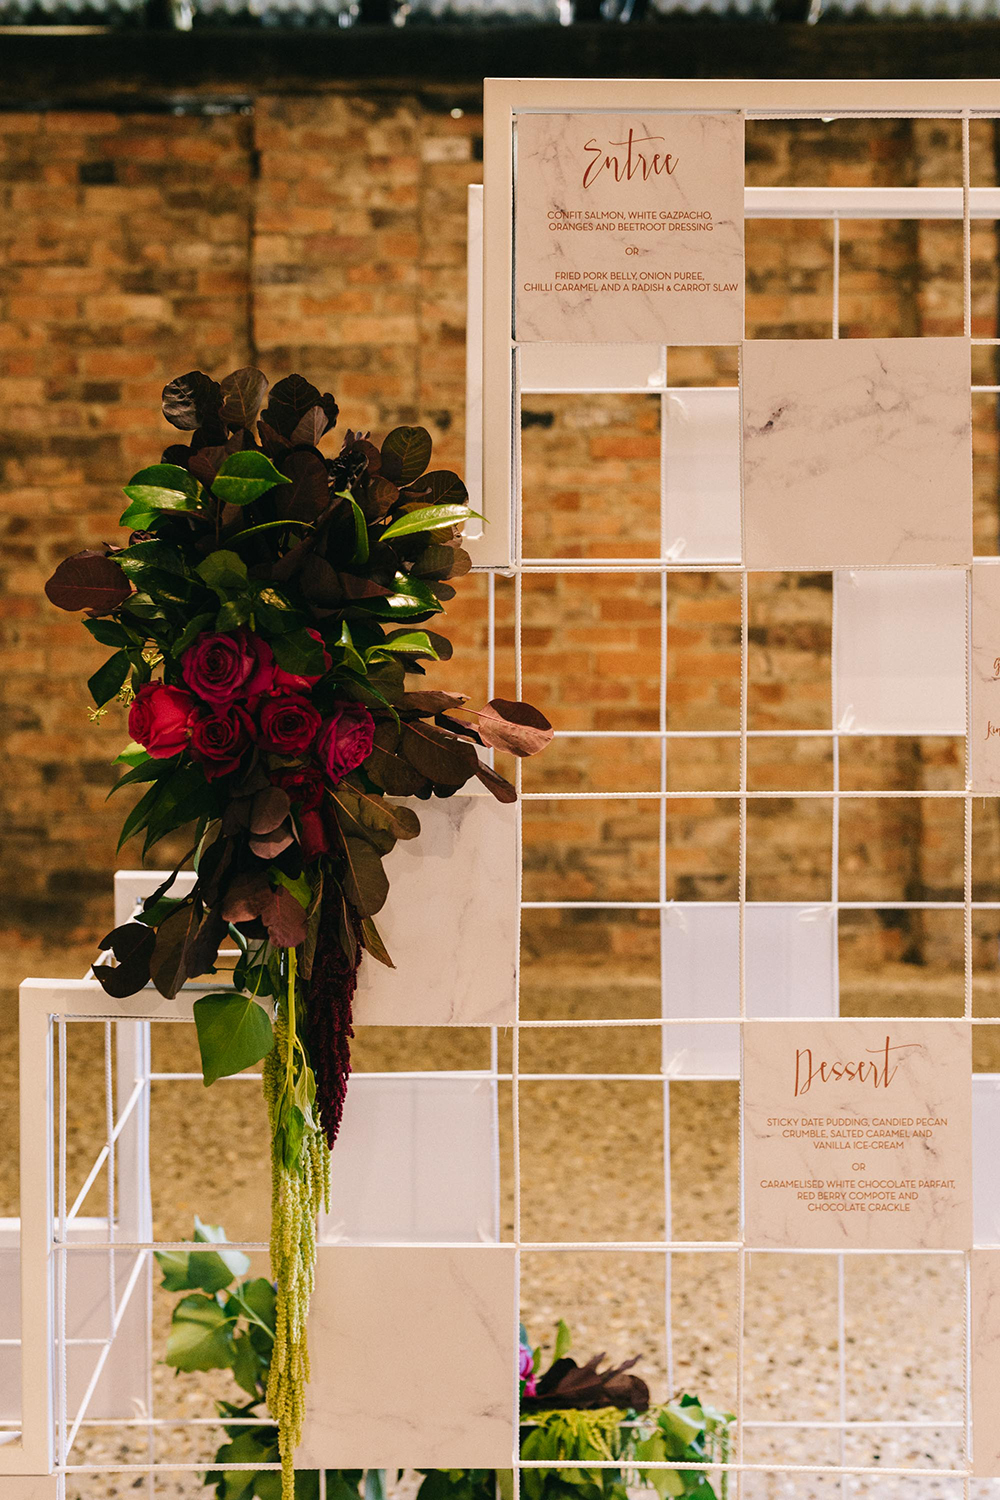 wedding planner melbourne wedding styling event planning melbourne wedding styling melbourne wedding stylist